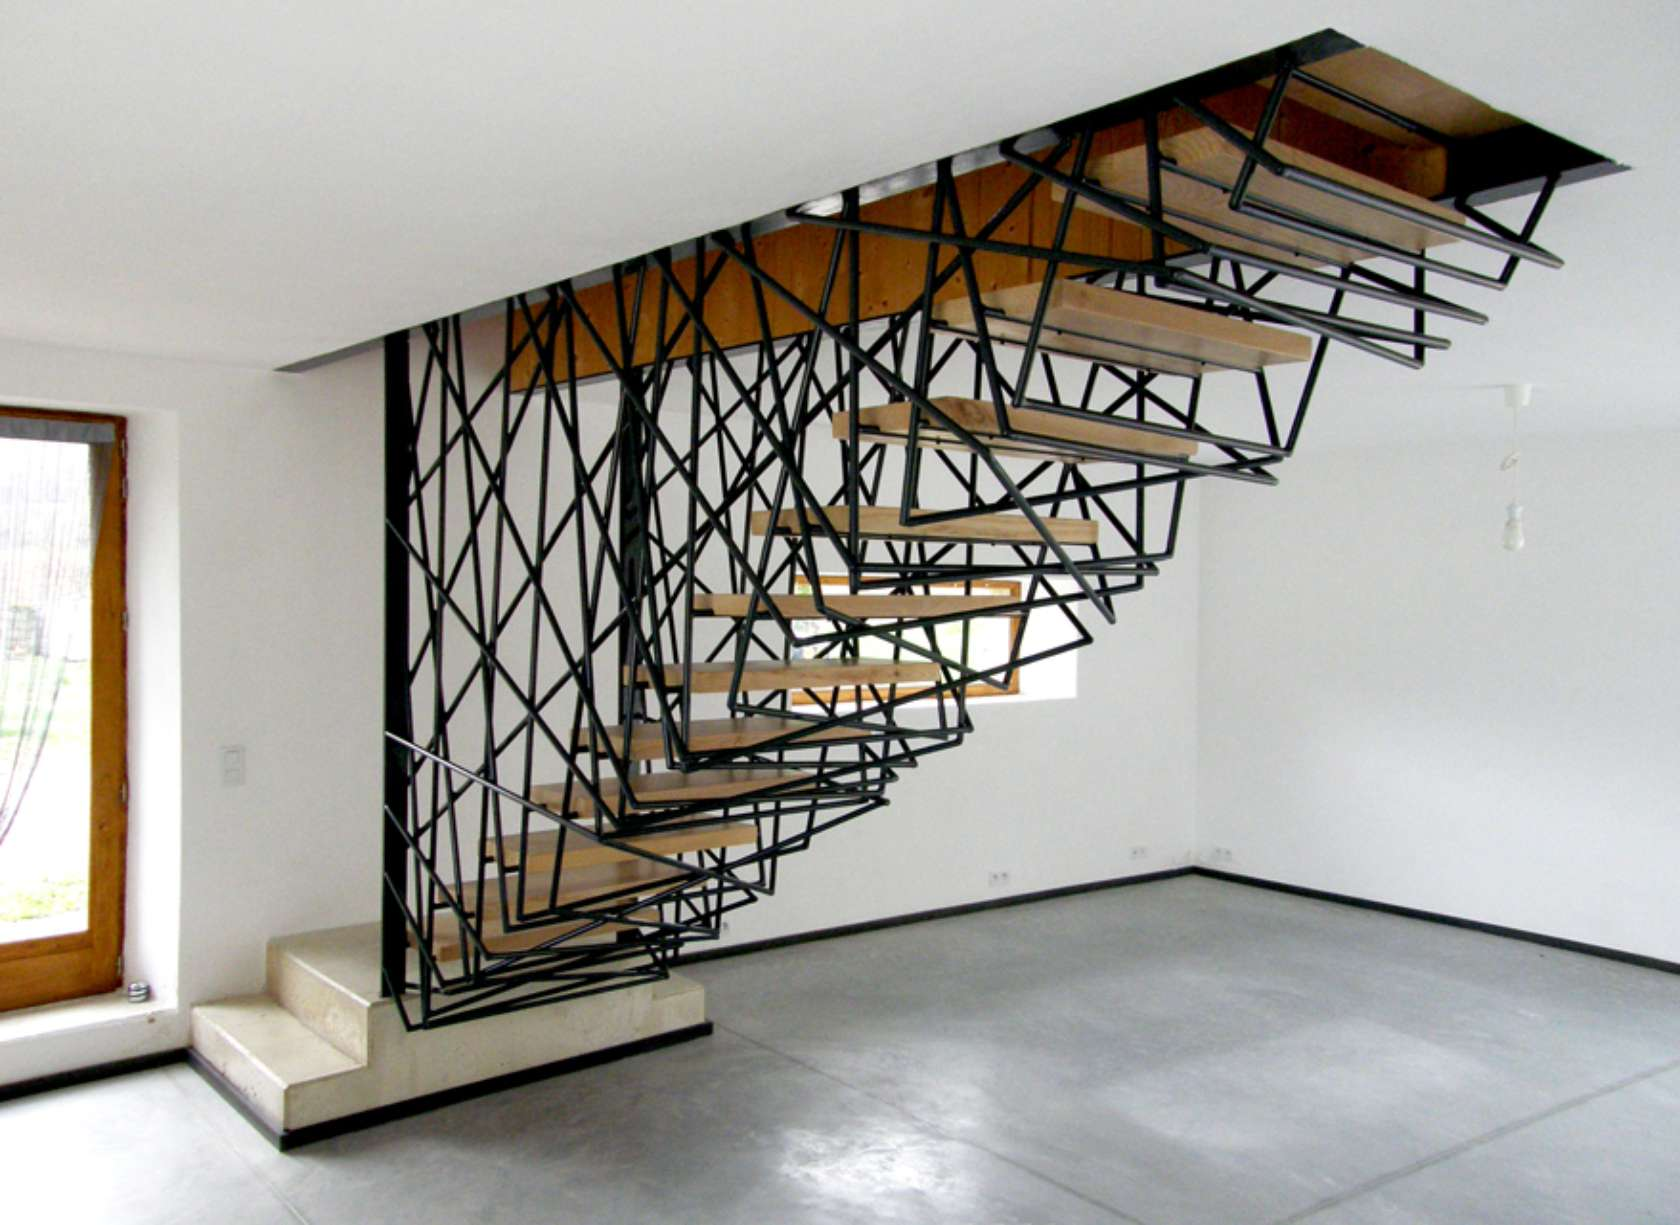 22 Unbelievable Stairs That Will Make You Stare - The HipVan Blog